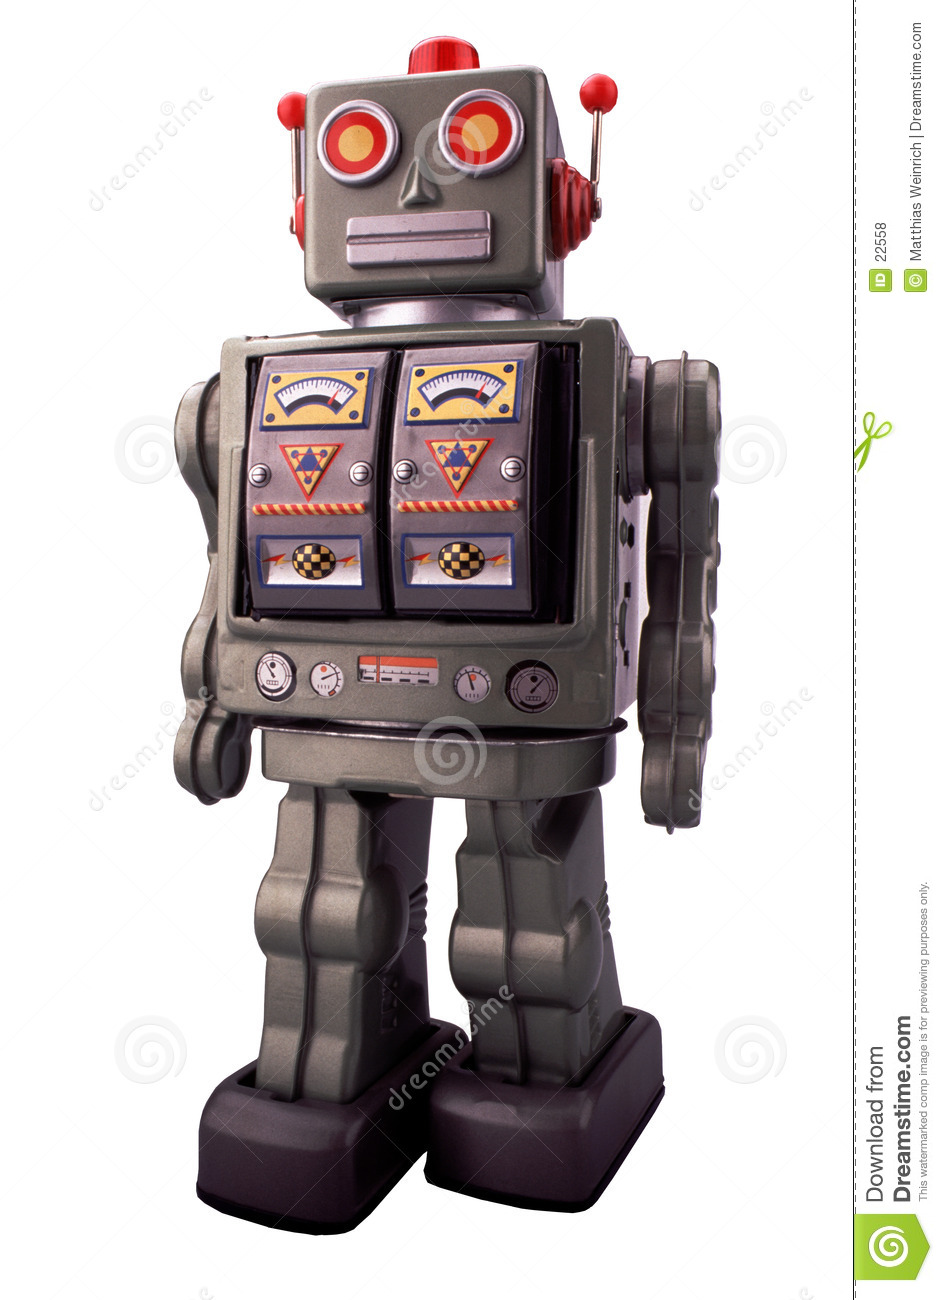 Toy Robot Stock Photo Image Of Made Robot Robots Toys 22558